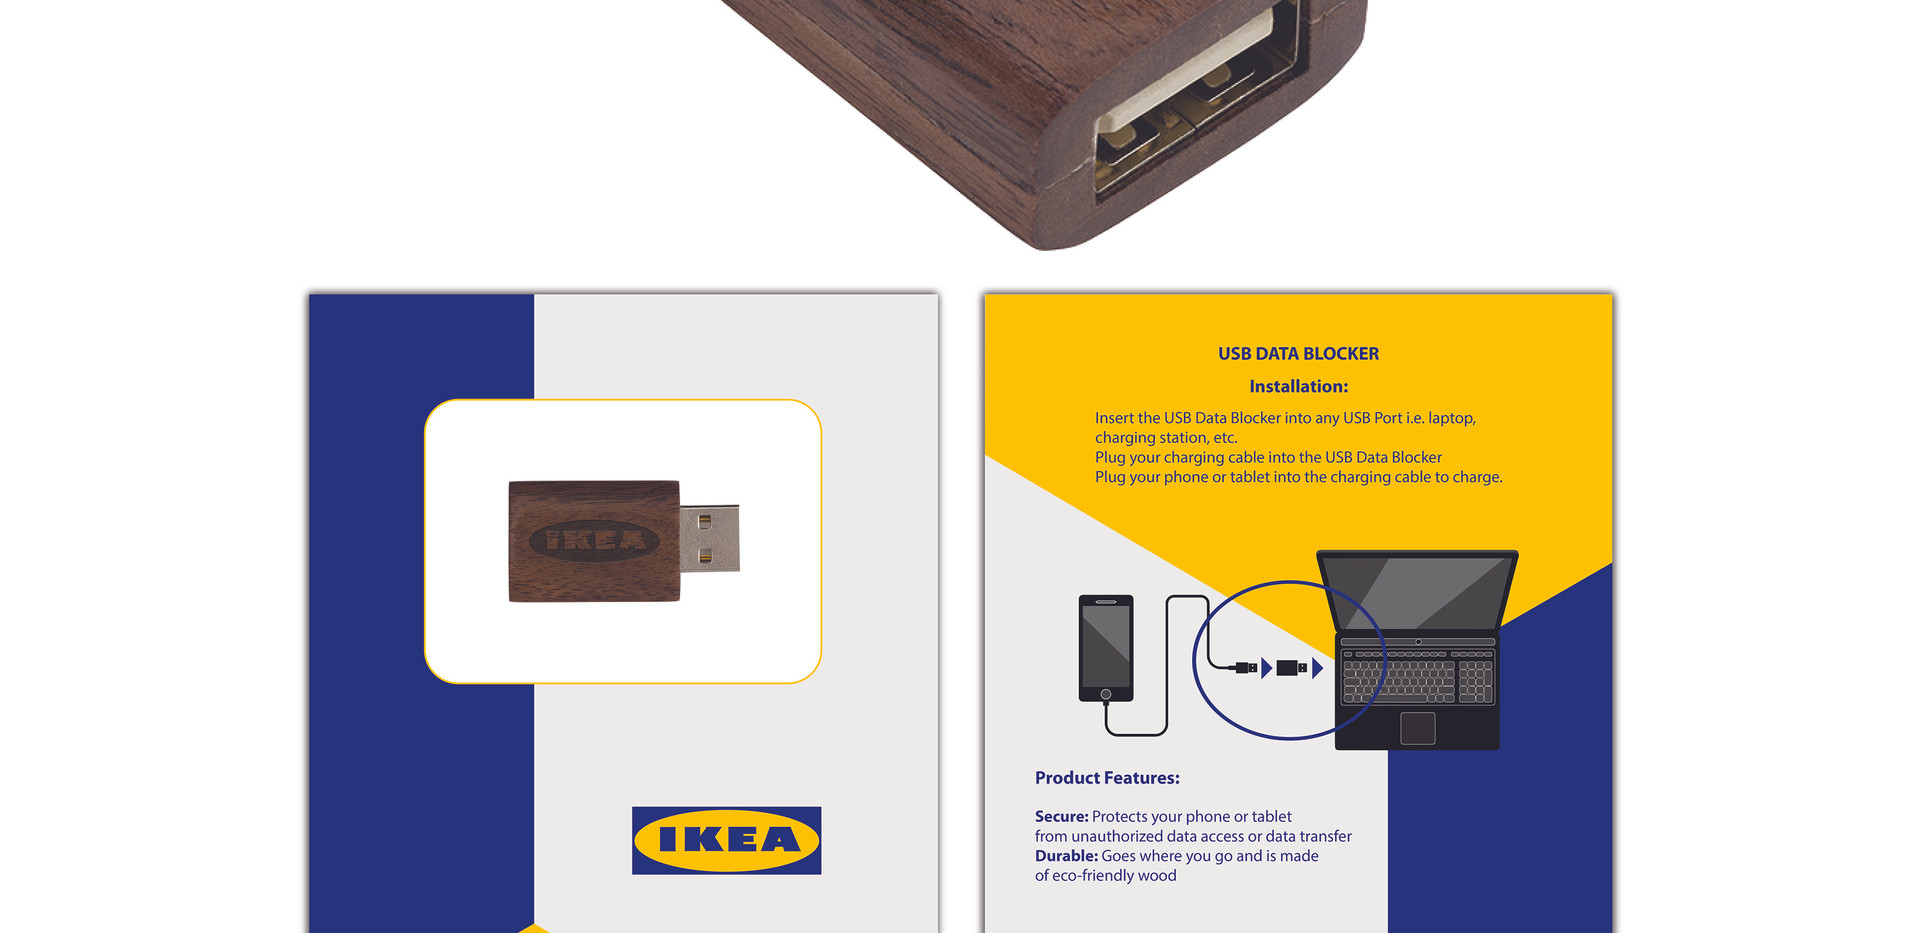 Ikea USDB Walnut Custom Card.jpg